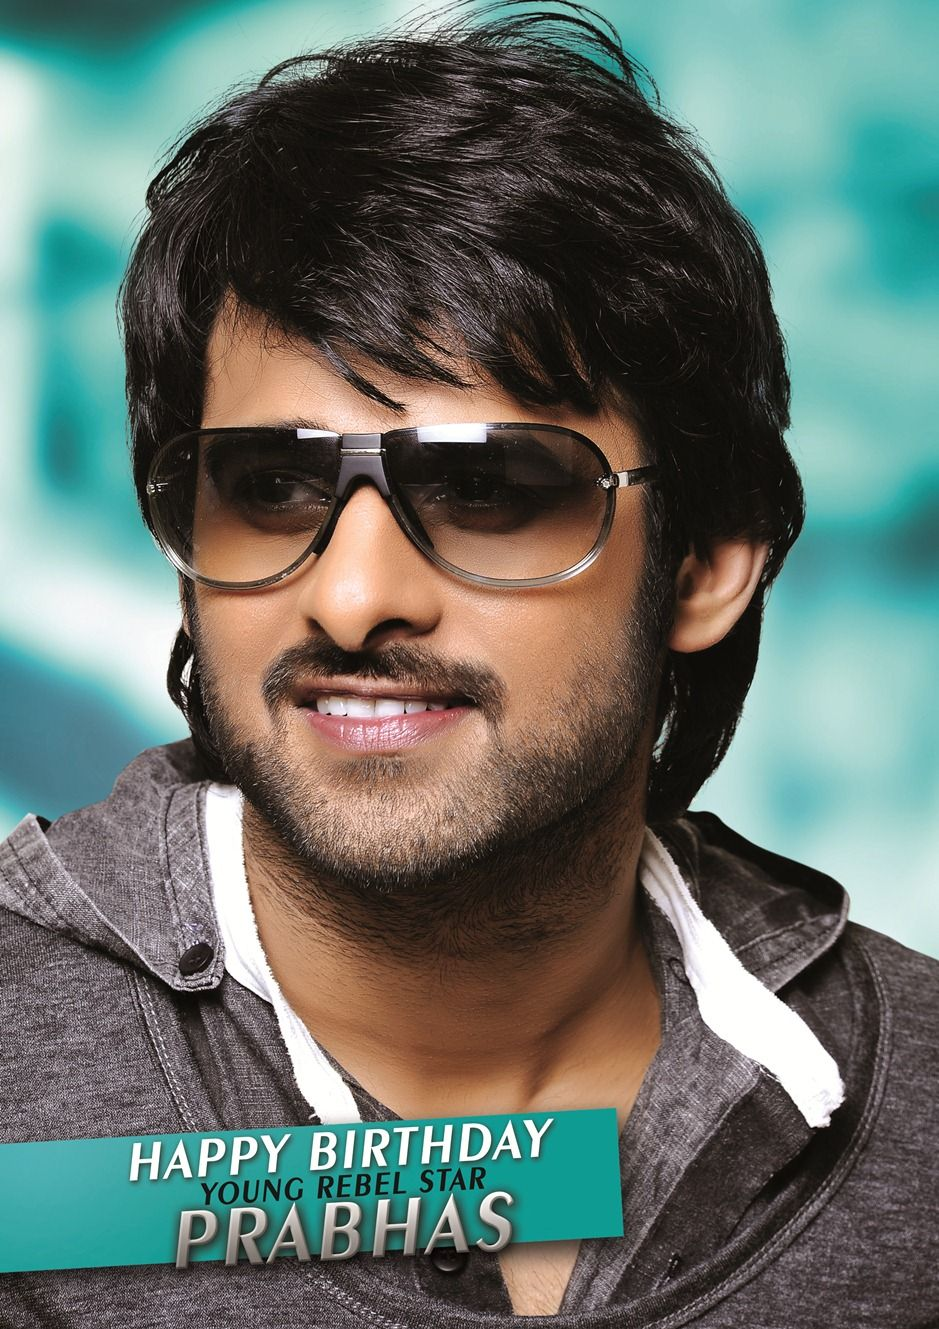 Prabhas Darling Raju Uppalapati Telugu South Indian Hero Prabhas Darling Telugu Tollywood India Bollywood Tamil Hd Prabhas Actor Hd Photos Prabhas Pics